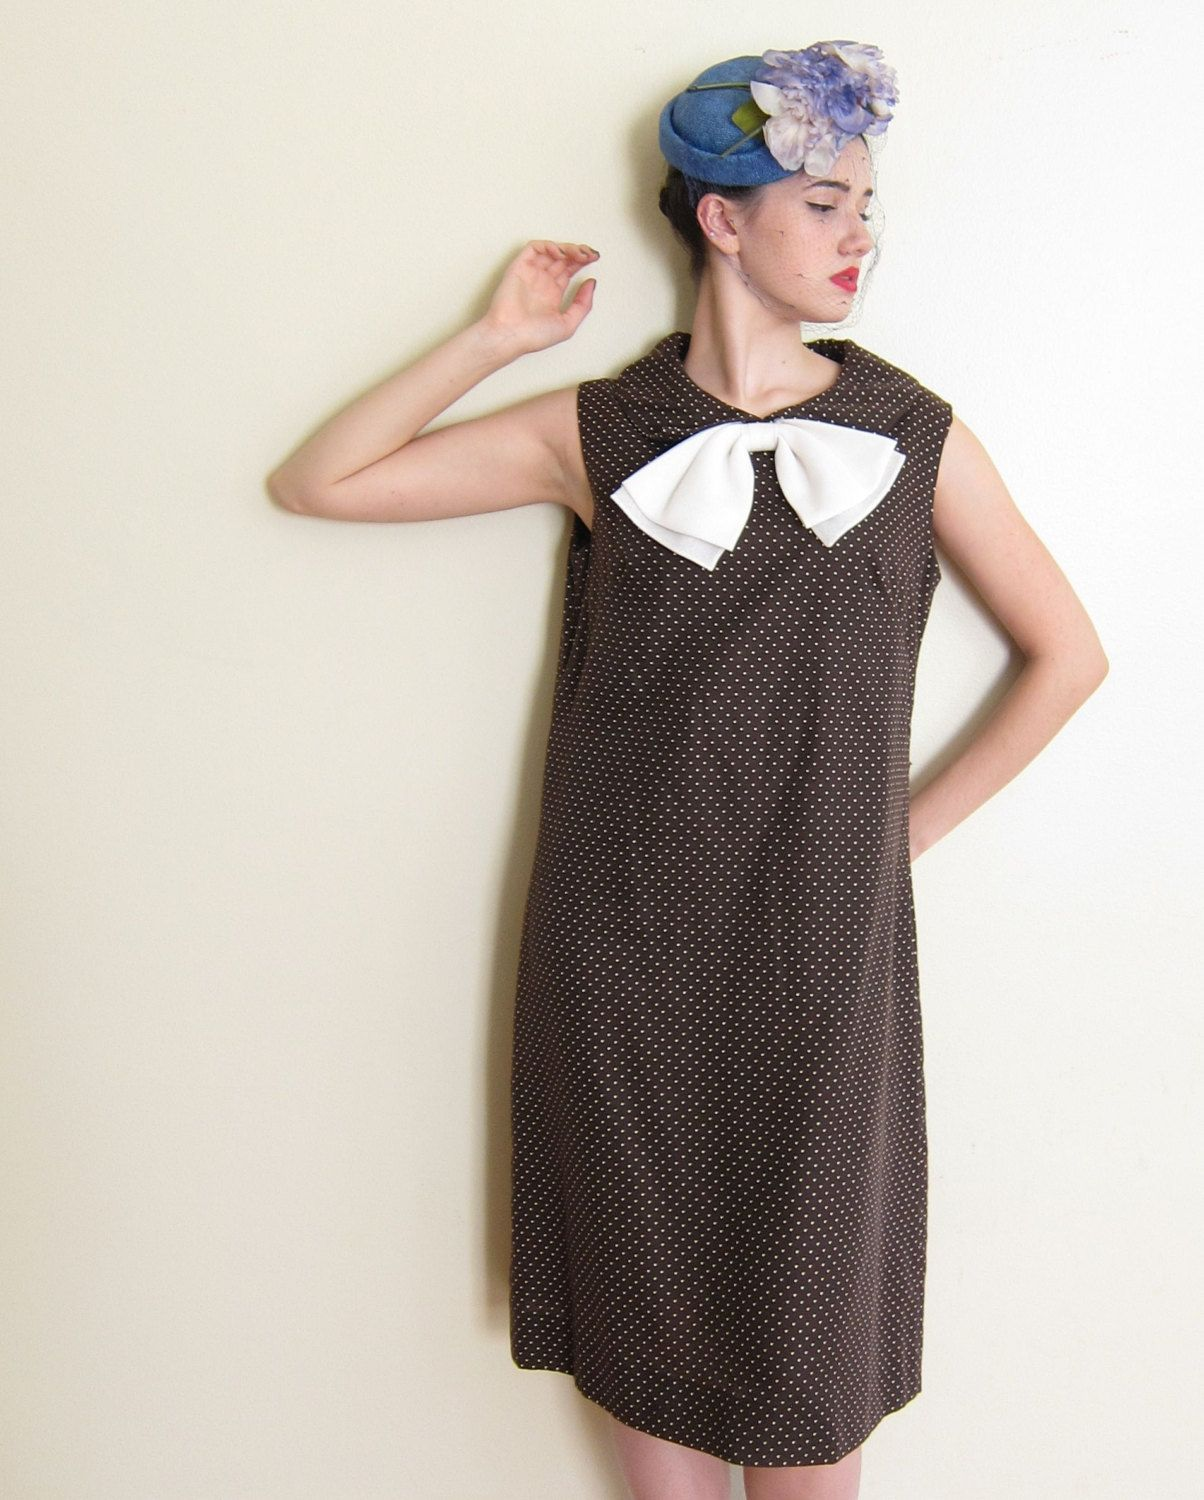 Vintage 1960s Polkadot Day Dress / 60s Shift in Brown and Cream / XL by BasyaBerkman on Etsy